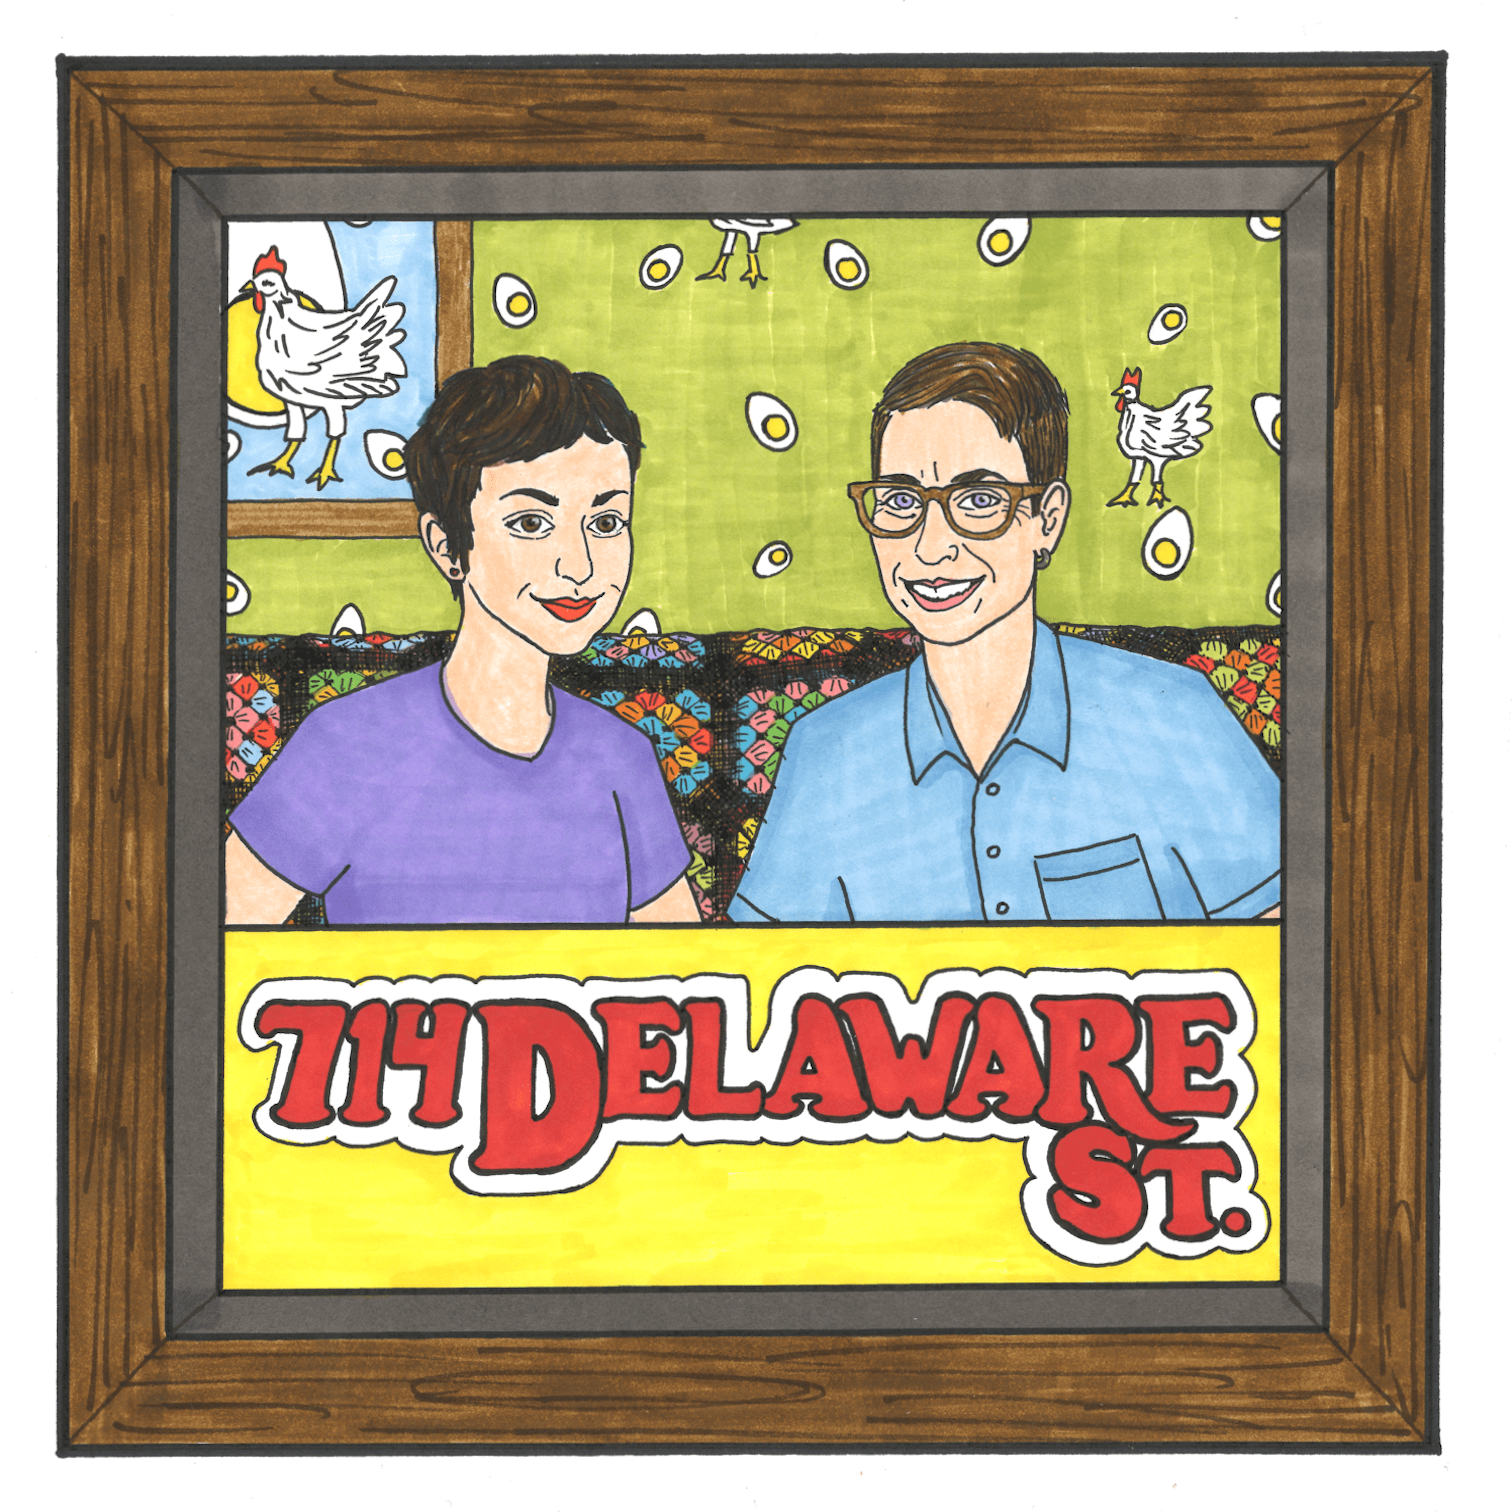 714 Delaware St.: A Podcast about Roseanne and The Conners